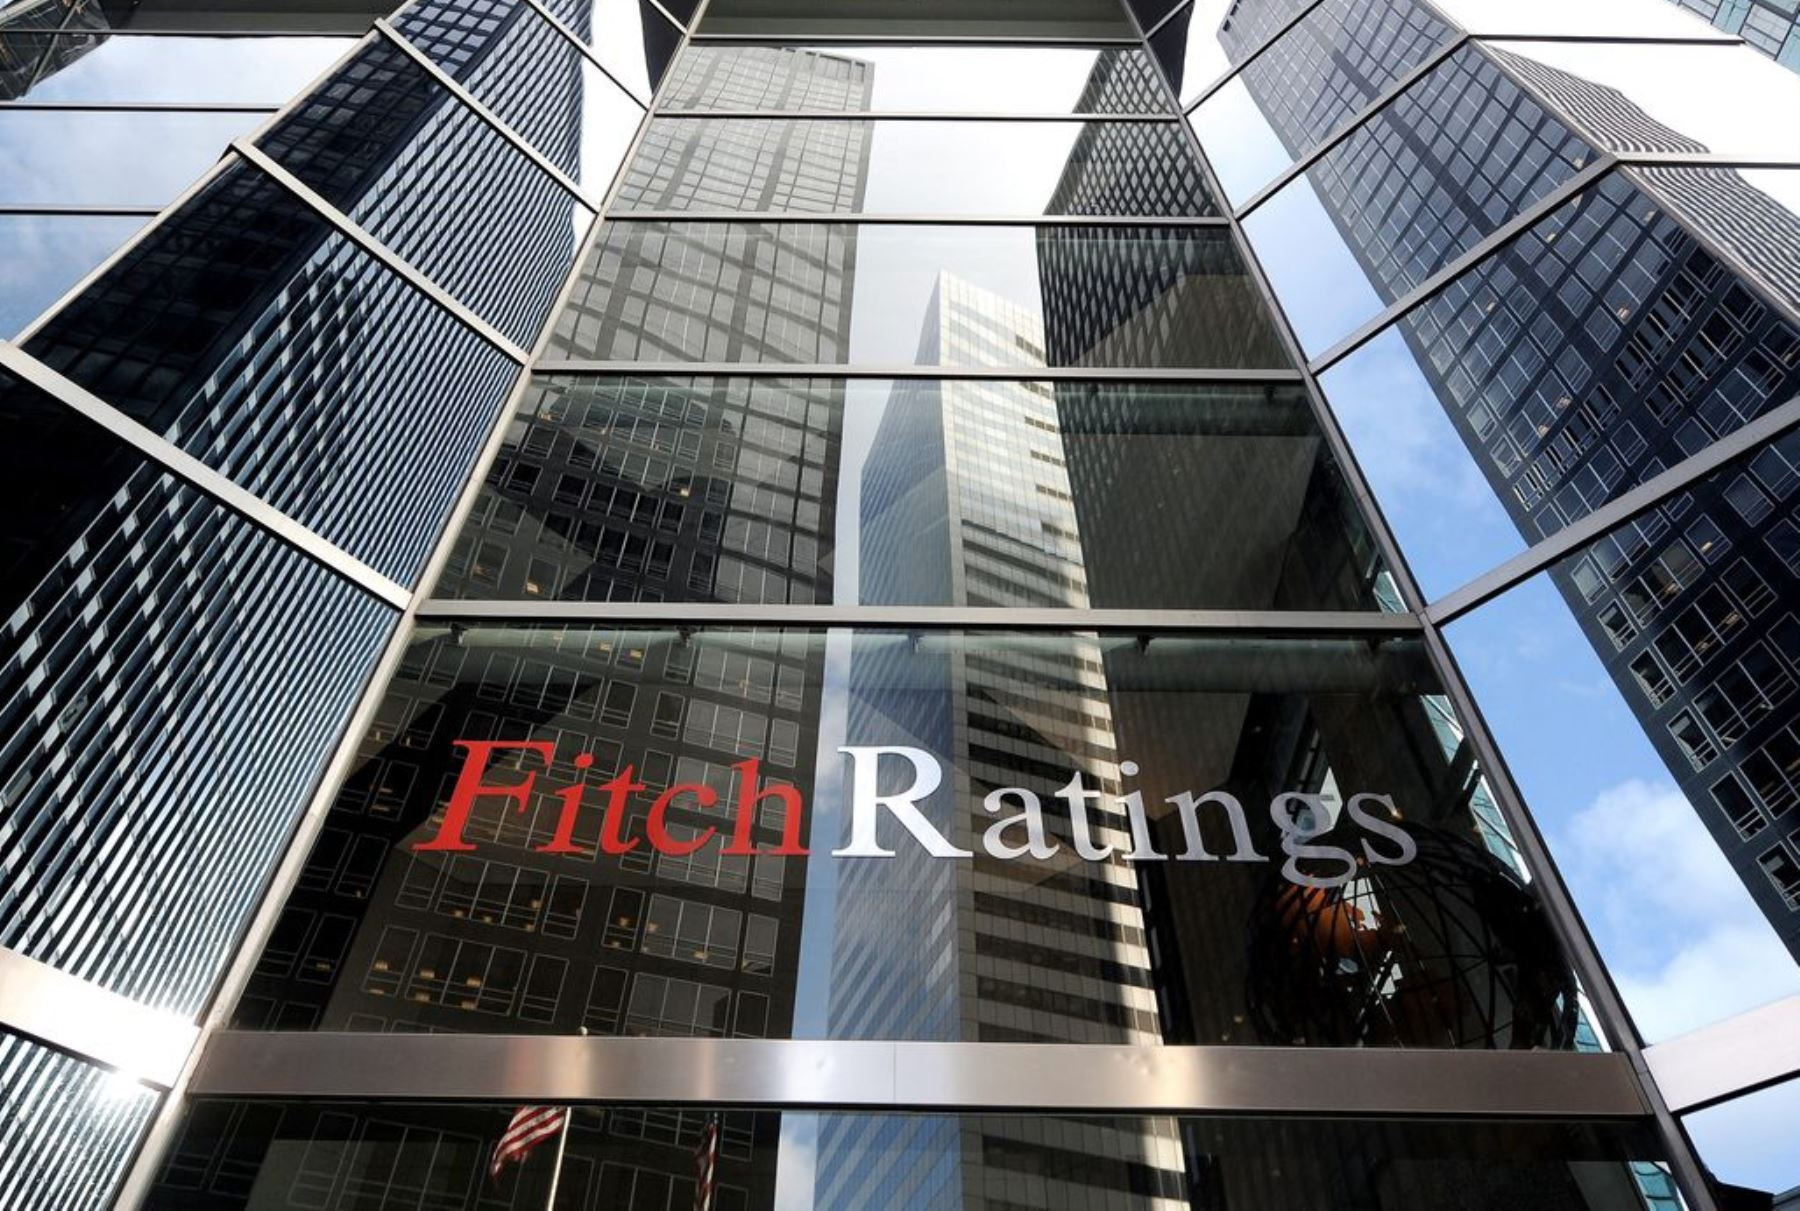 fitch-ratings-rebajo-de-a-a-bbb-calificacion-crediticia-del-peru-para-emisiones-en-moneda-local